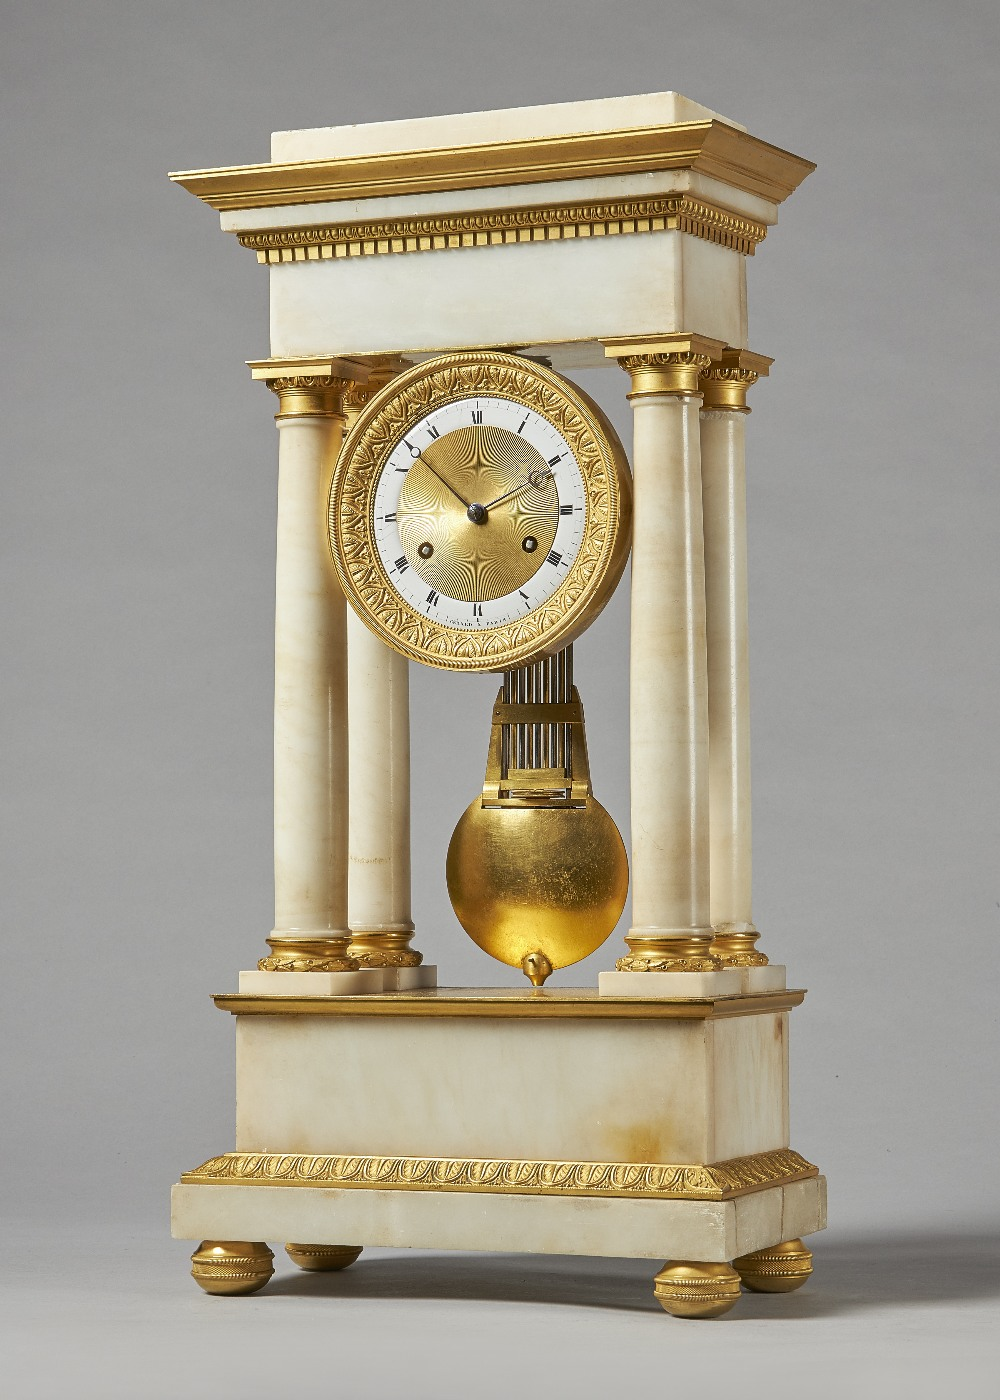 Lot 699 - An Empire ormolu and white marble portico clock By Gérard,